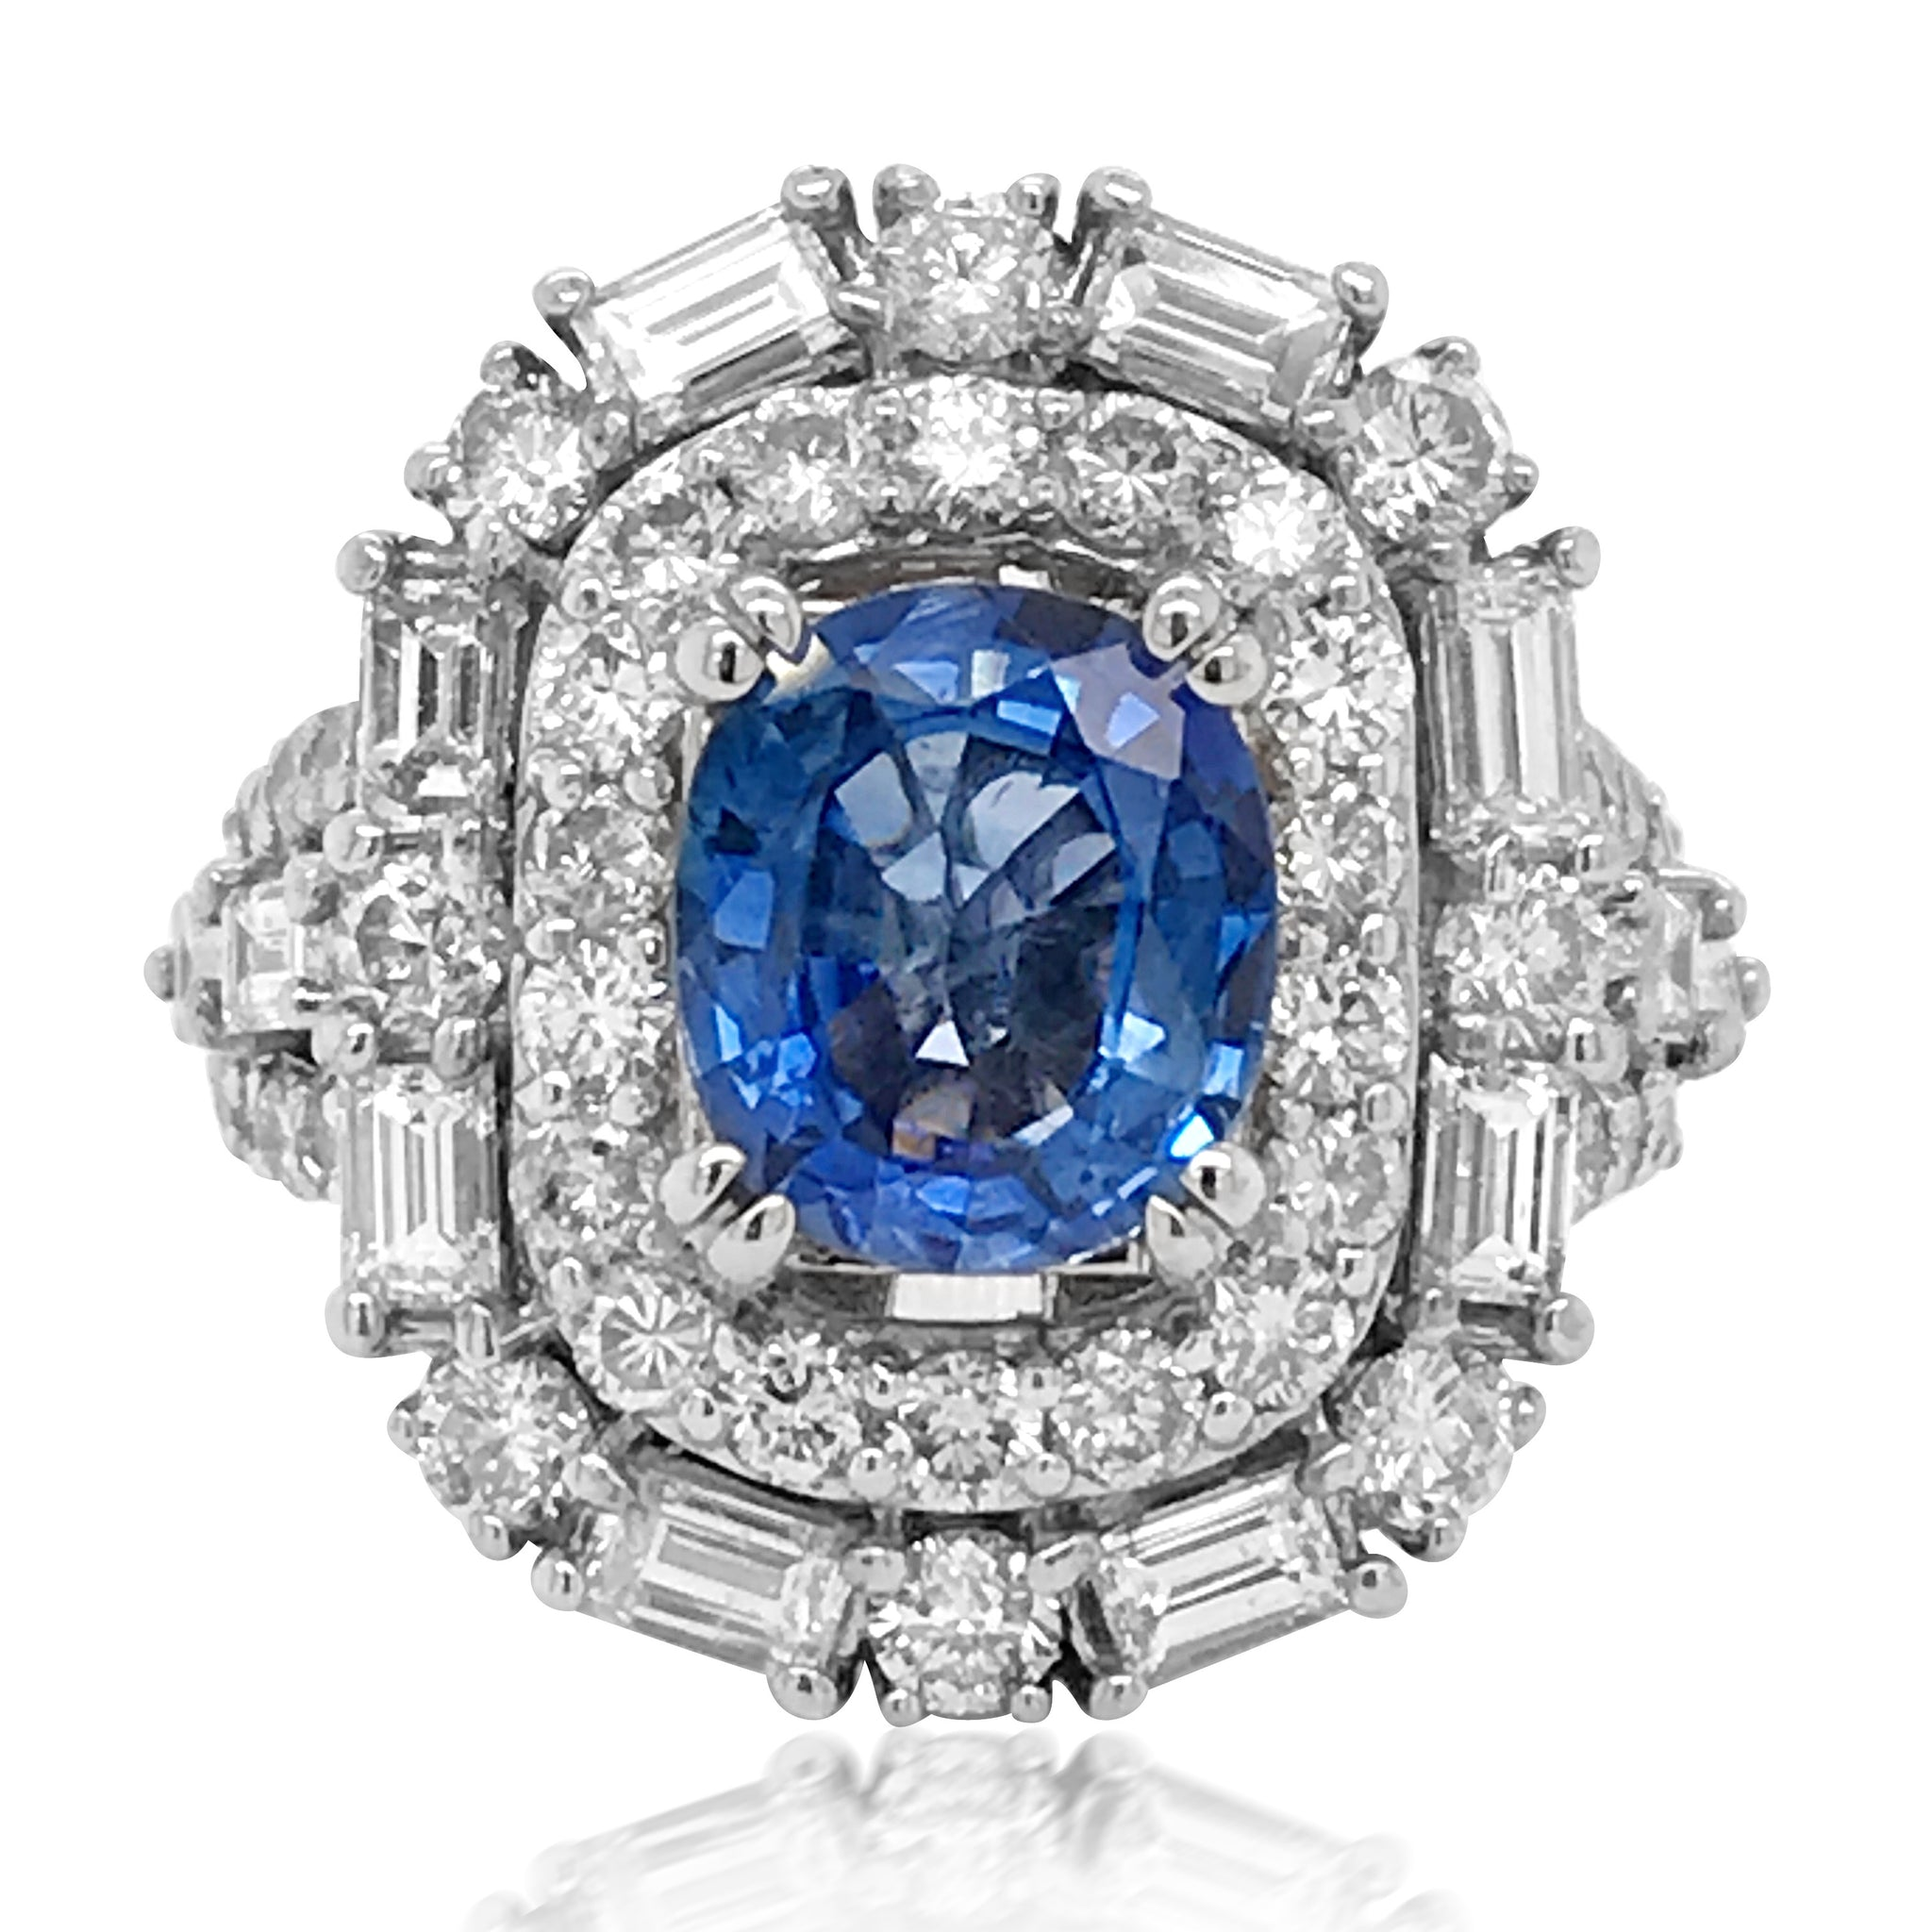 White Gold Sapphire Diamond Ring - Lueur Jewelry